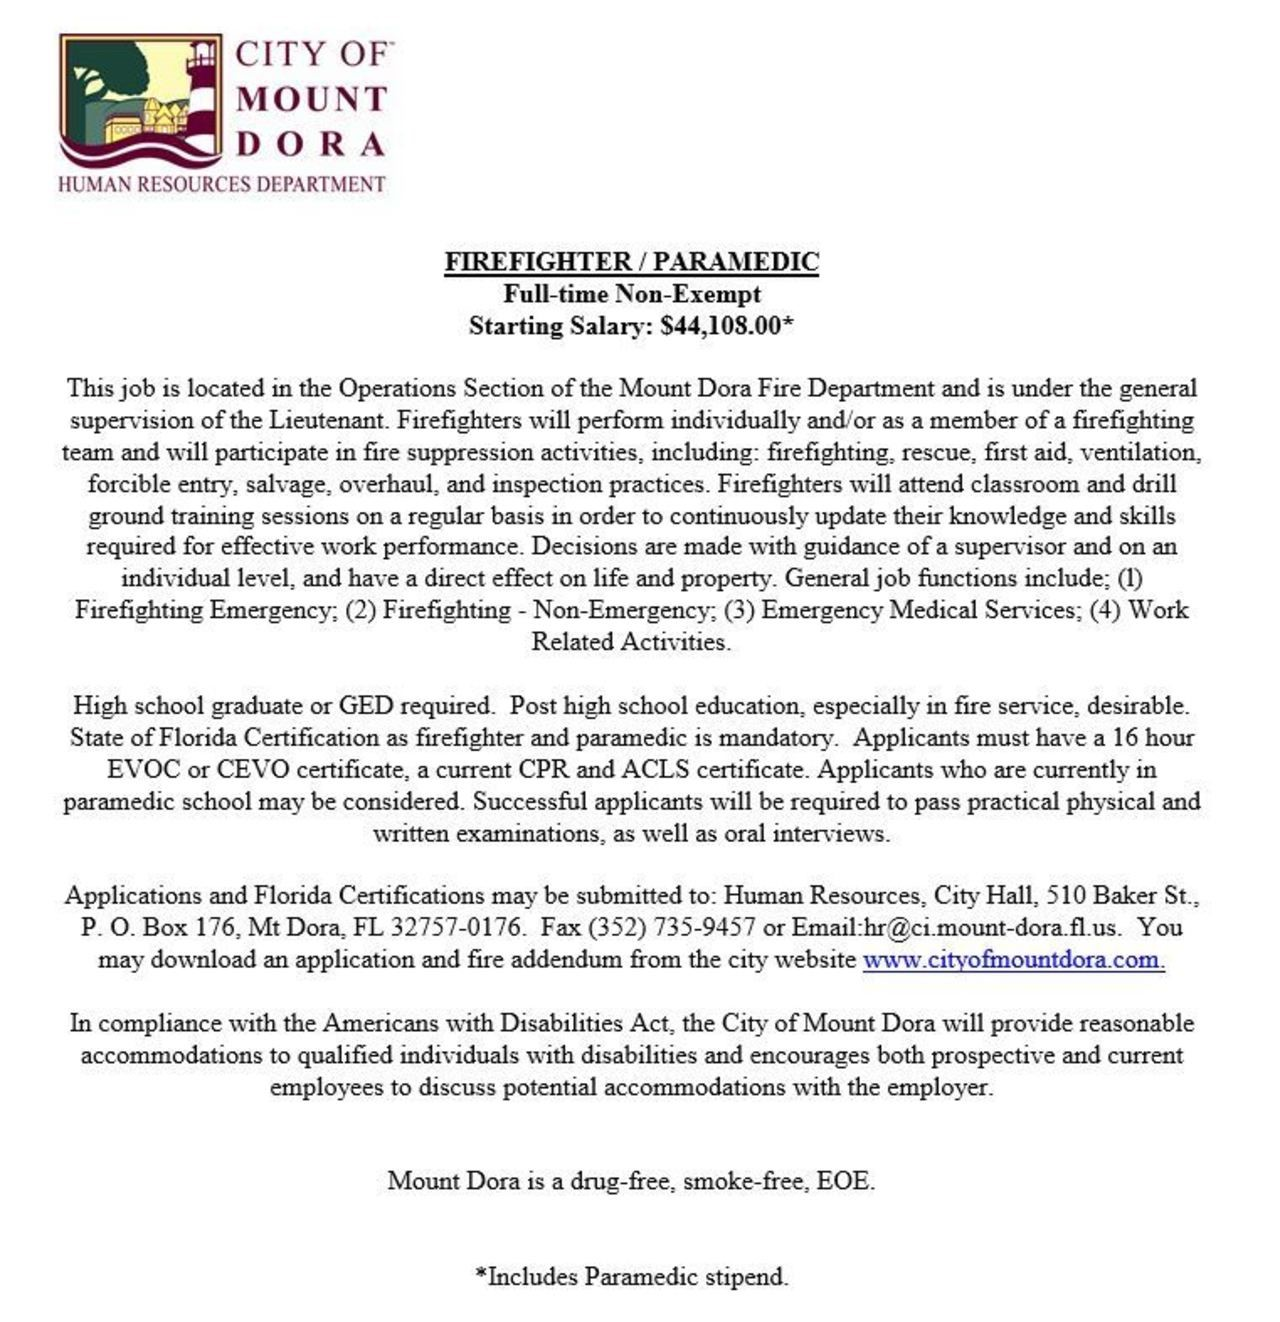 City of Mount Dora Hiring Firefighter/Paramedic